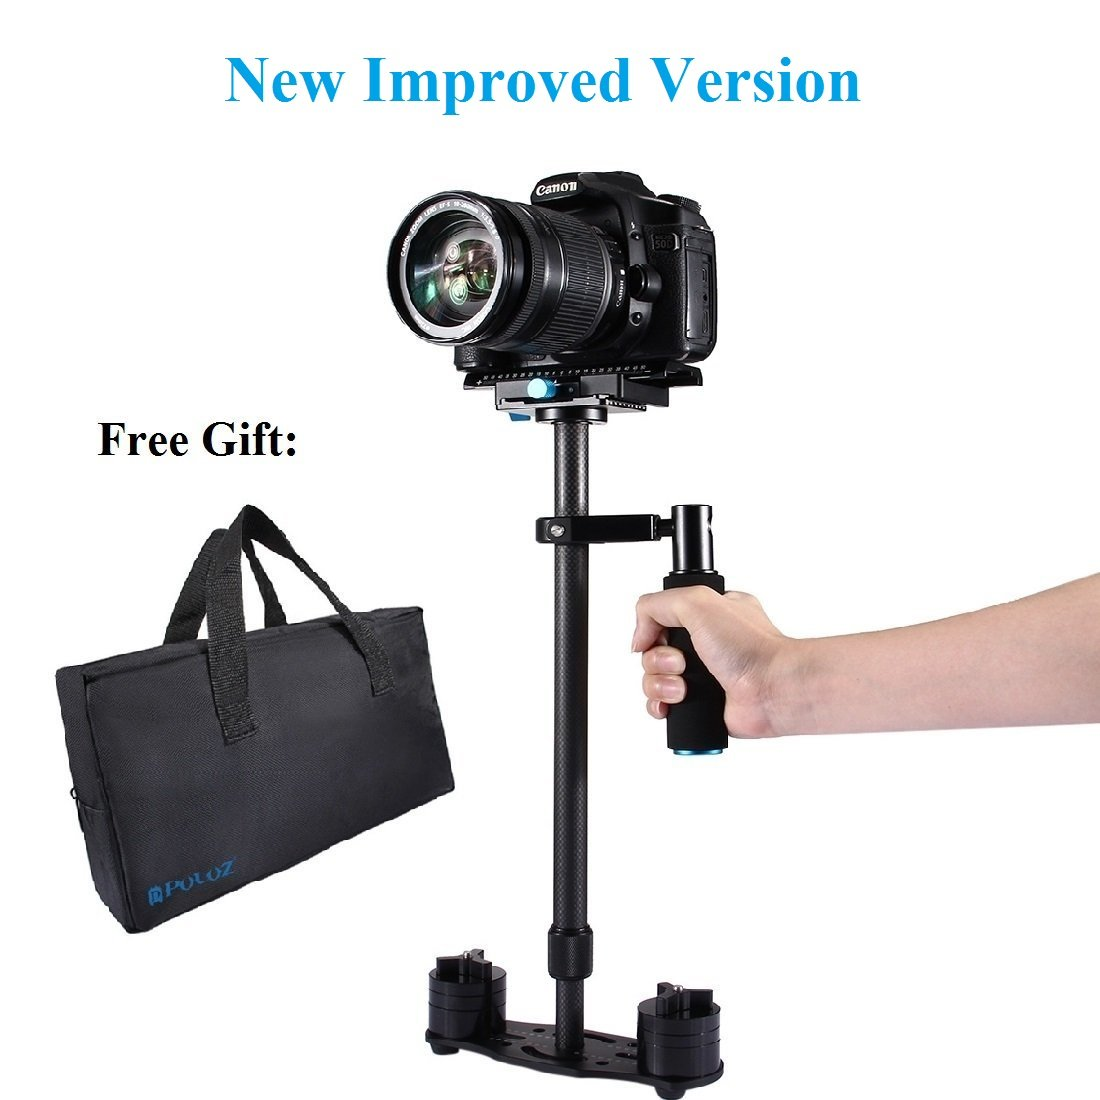 DSLR Handheld Stabilizer, PULUZ 24'' 60cm Professional Carbon Fibre Video Stabilizing Support for Canon Nikon Sony Panasonic & other Digital SLR Cameras, Max Load:3kg/6.6lb